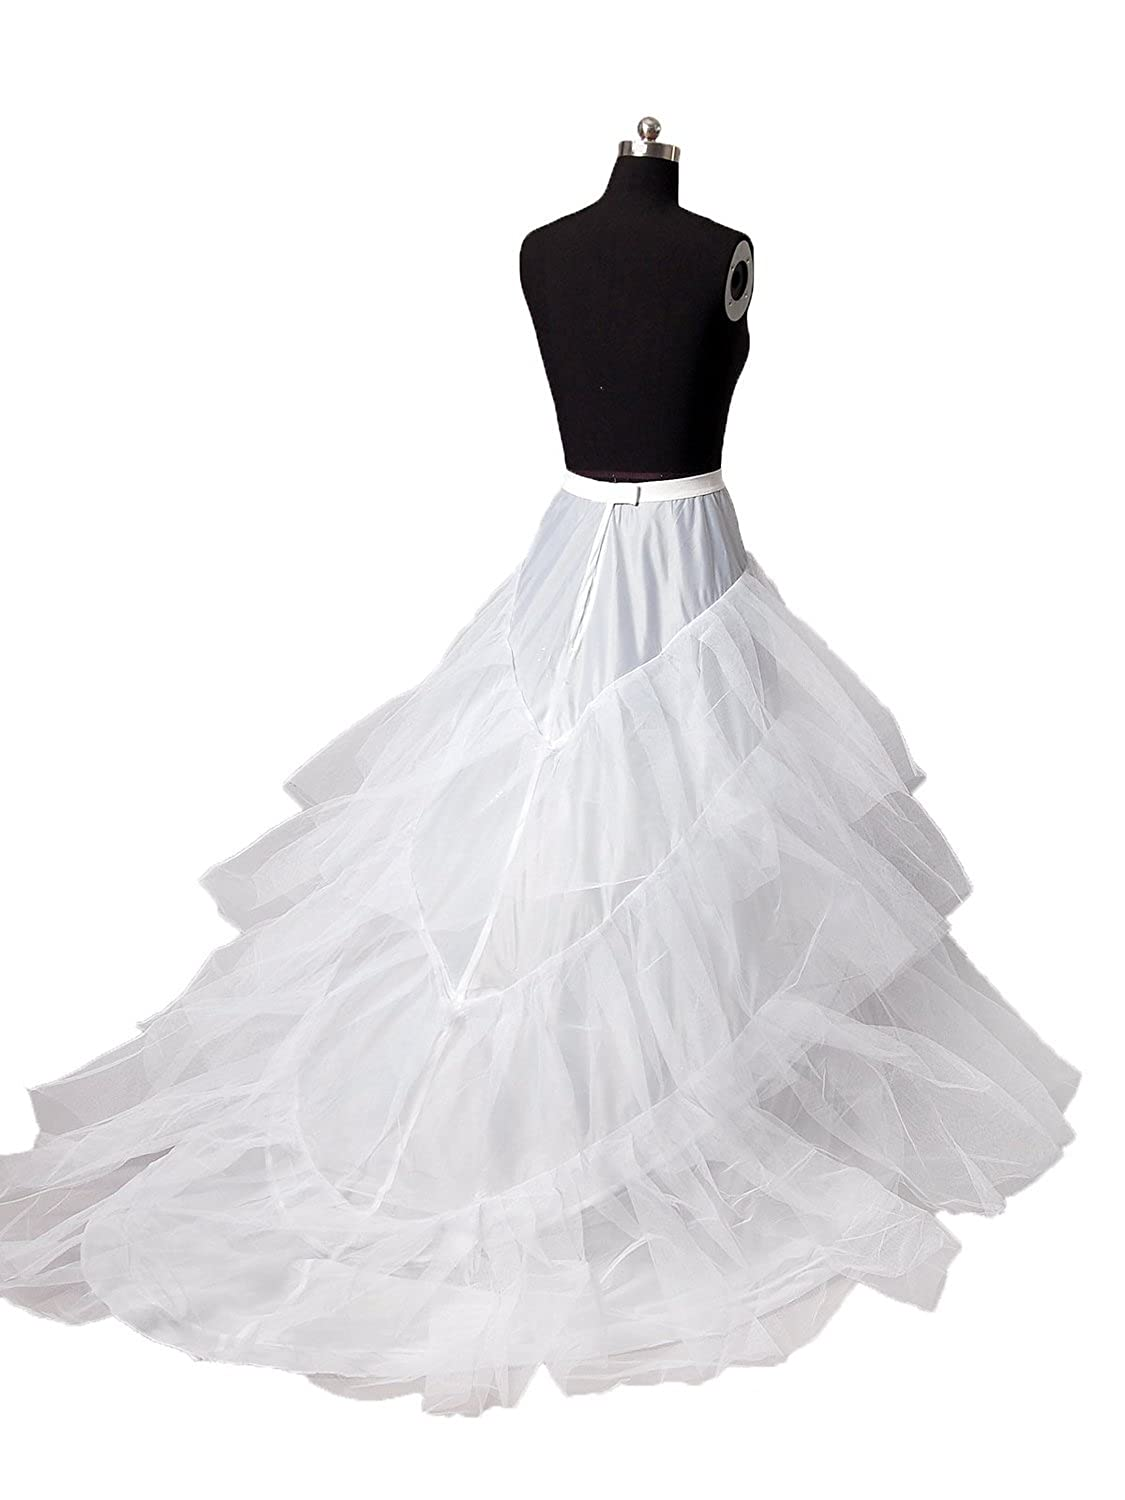 Petticoats Skirts Slip - Women 2015 A-Line/Ball Gown/Train Dress 005 at Amazon Womens Clothing store: